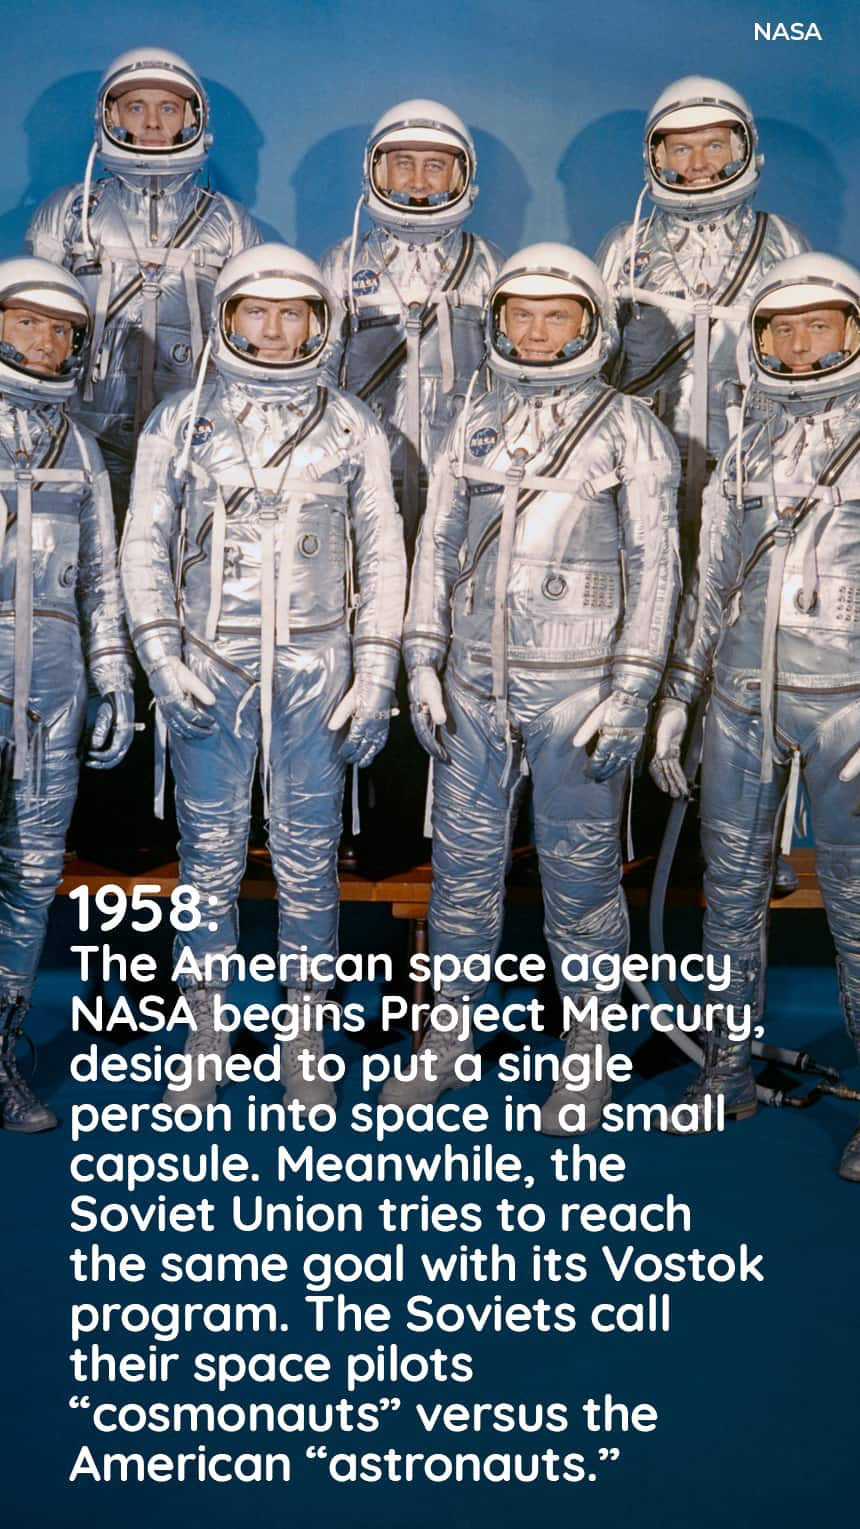 1958: The American space agency NASA begins Project Mercury, designed to put a single person into space in a small capsule. Meanwhile, the Soviet Union tries to reach the same goal with its Vostok program. The Soviets call their space pilots cosmonauts versus the american astronauts.